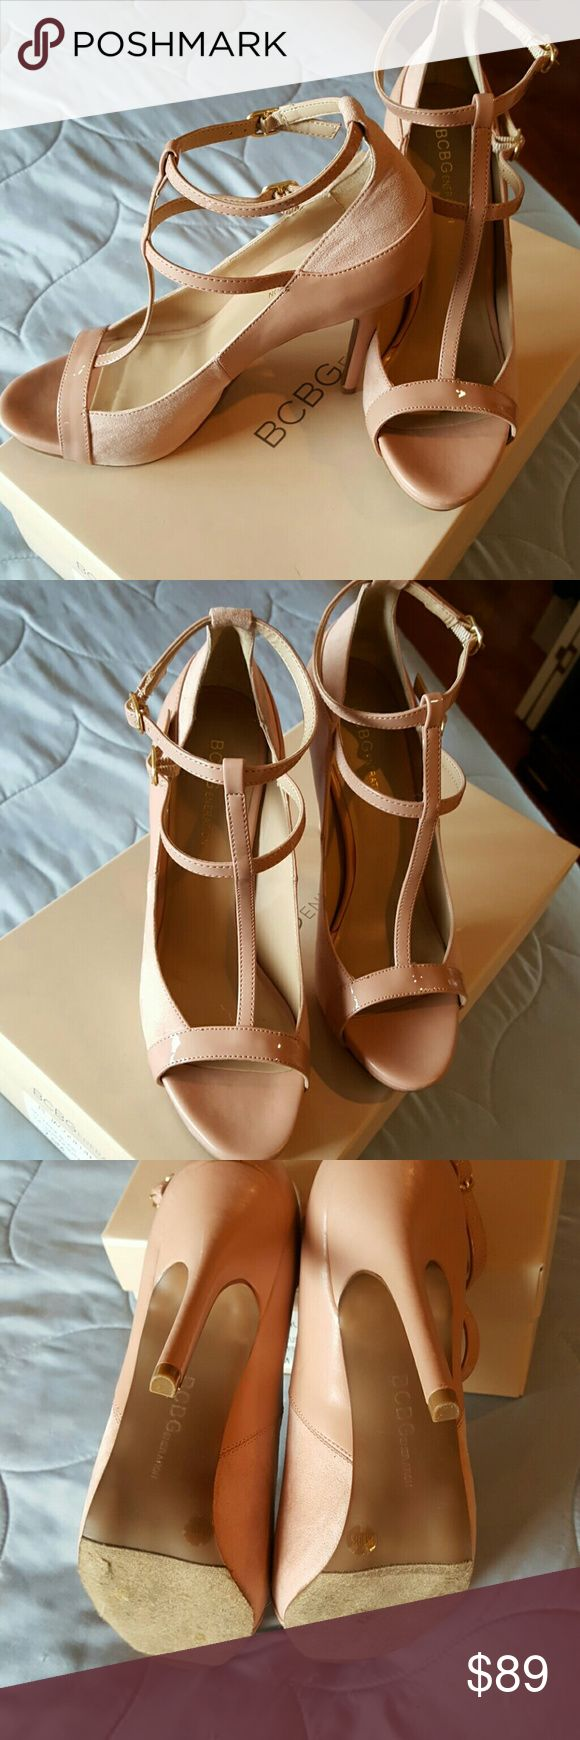 Ballerina blush jacquelin BCBG strappy heels 7.5 Used once for new years...these are simply gorgeous!! Strappy..5 inch heel..by BCBG generation .  A neutral color that makes a statement. Leather and suede..color is ballerina blush..pink hue with cream..see pix.. BCBGeneration Shoes Heels